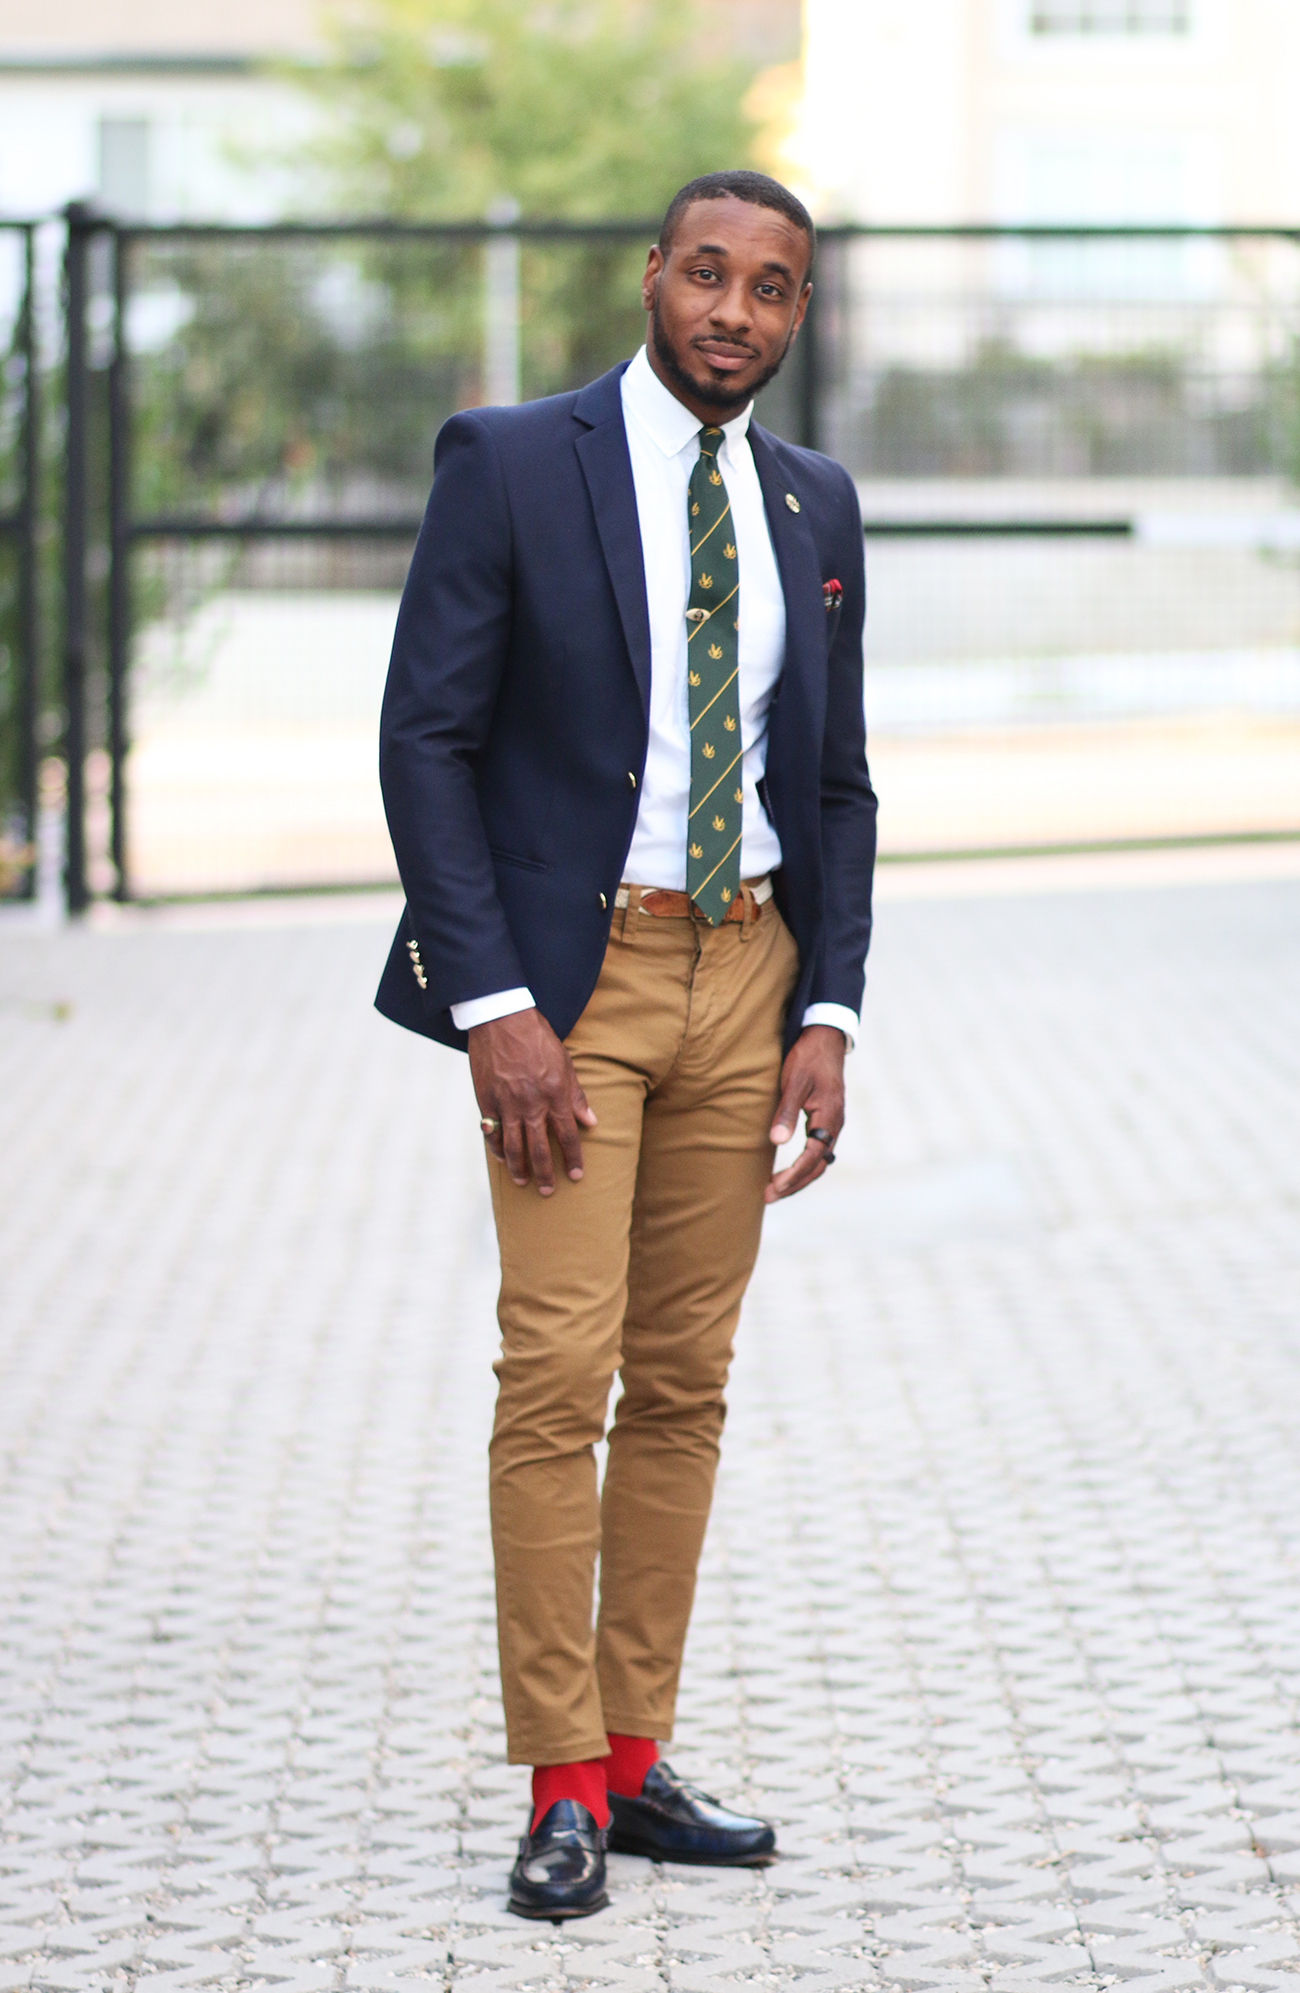 STYLE UNIFORMS FOR BACK-TO-SCHOOL – Norris Danta Ford